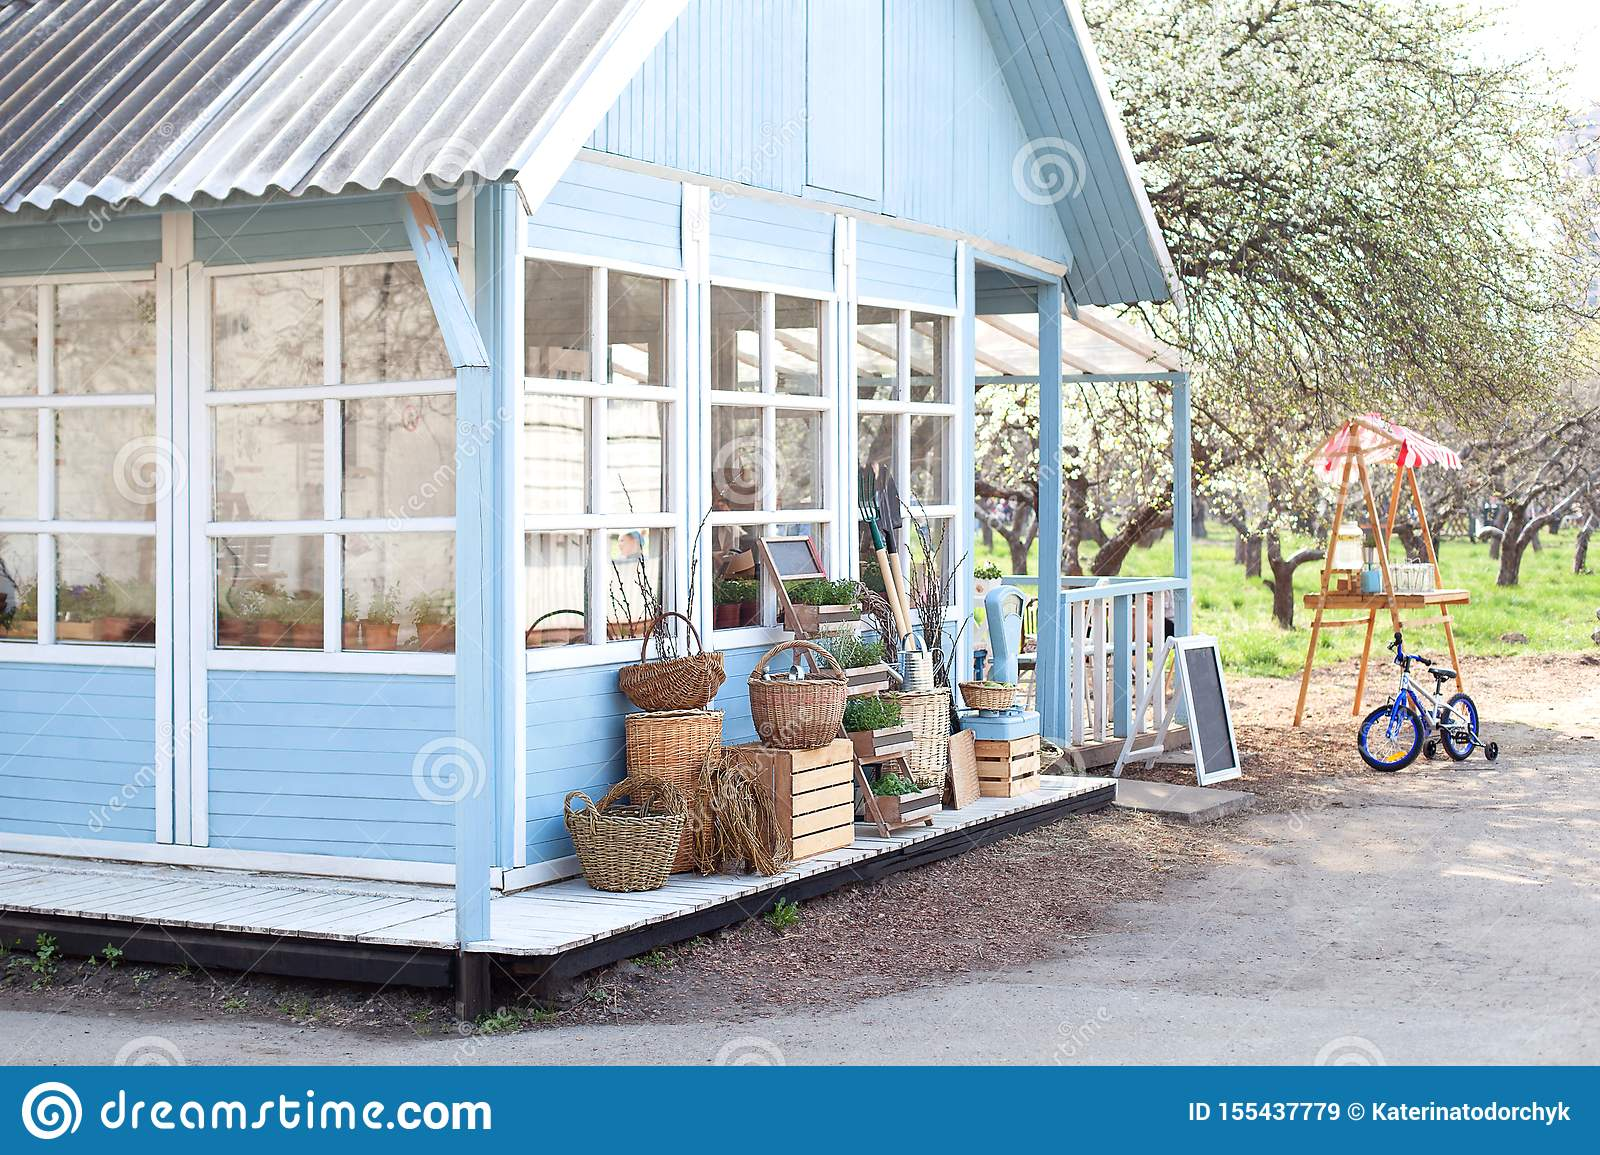 33 723 Rustic Country Garden Photos Free Royalty Free Stock Photos From Dreamstime